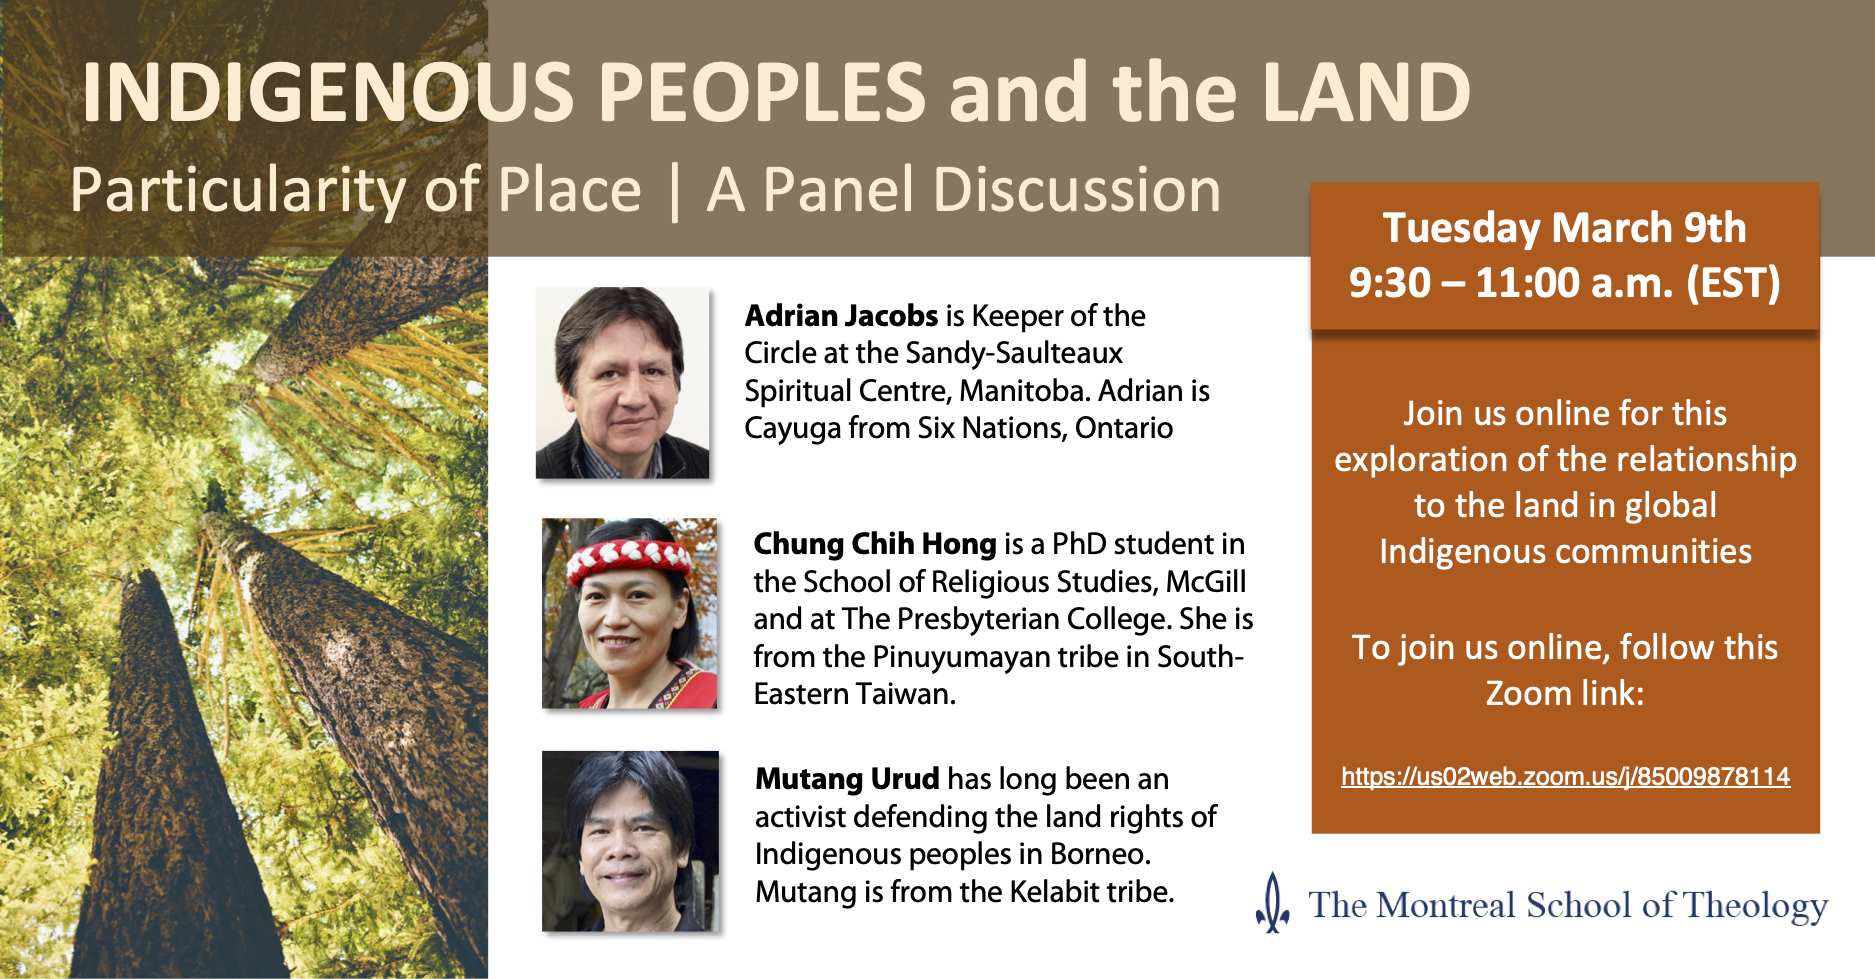 Panel Discussion: Indigenous Peoples and the Land